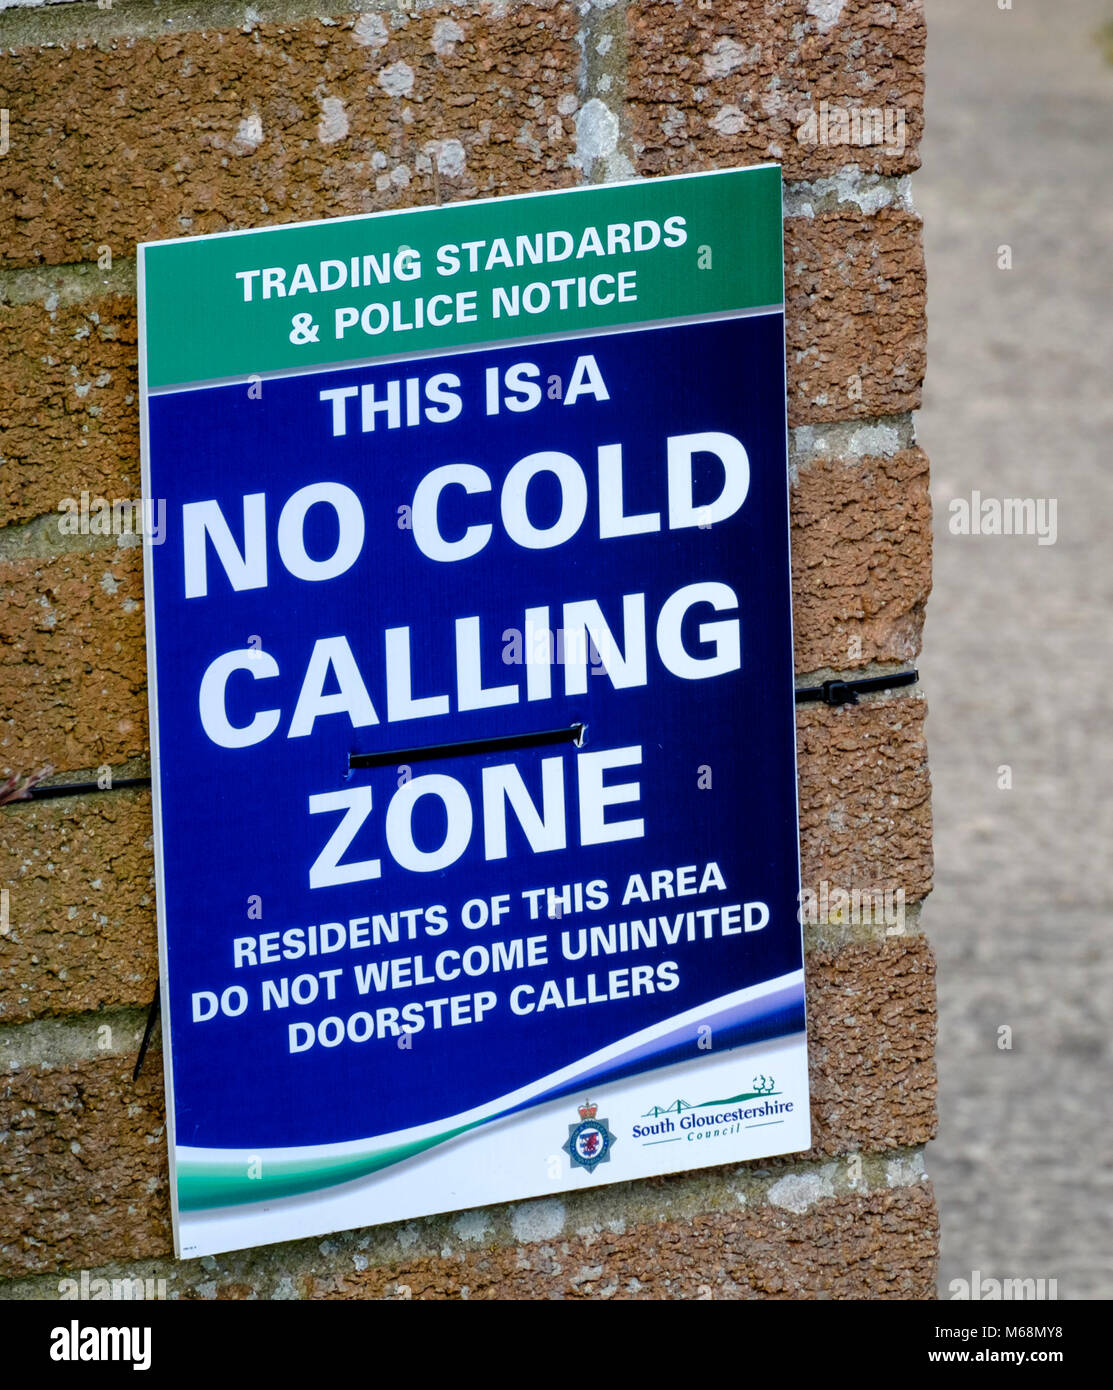 A No Cold Calling Sign from south Glos trading standards. - Stock Image